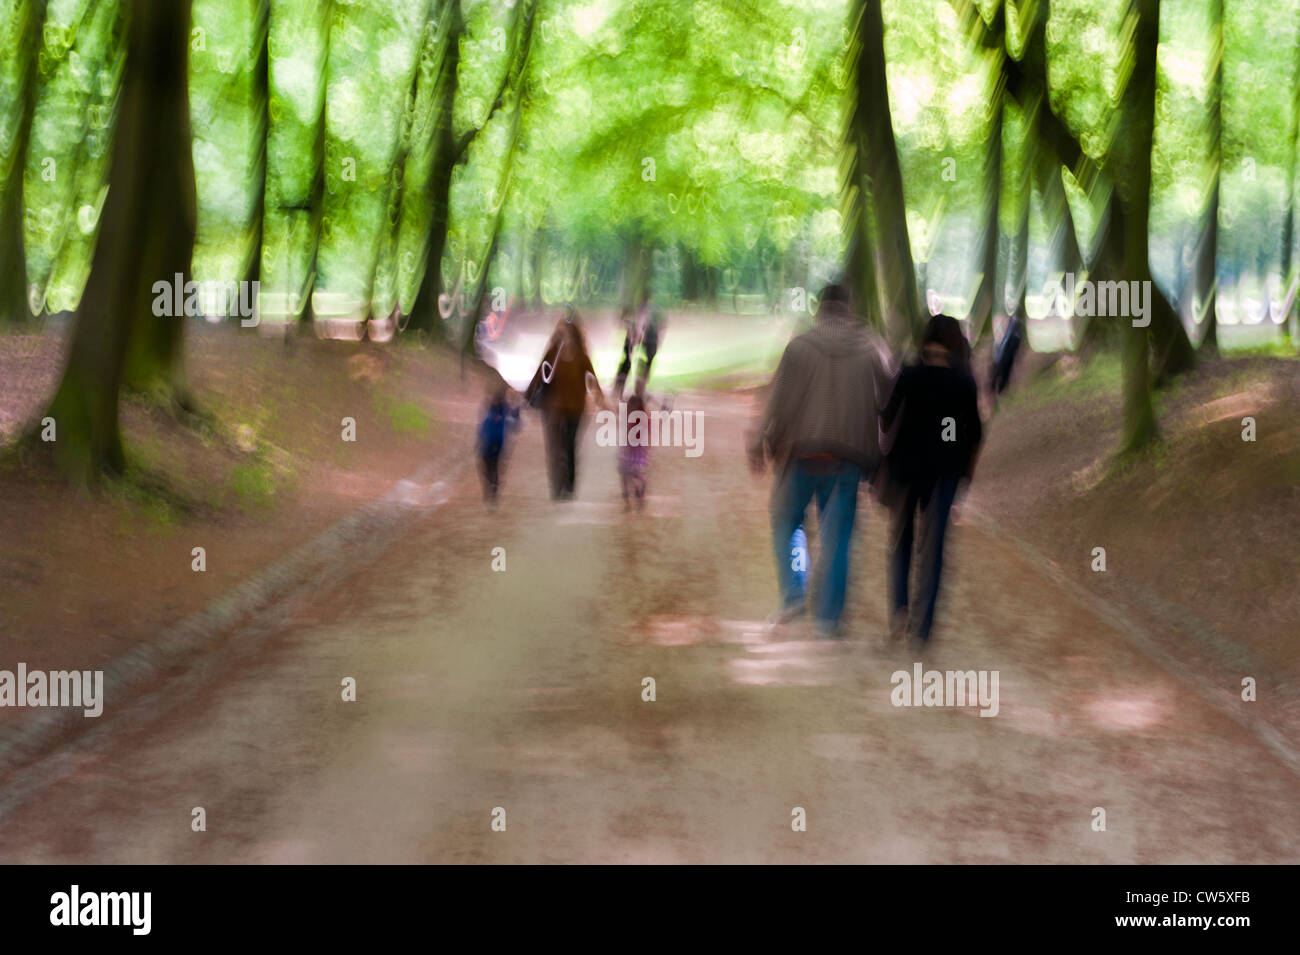 A Sunday walk in the woods and park, Brussels, Belgium - Stock Image